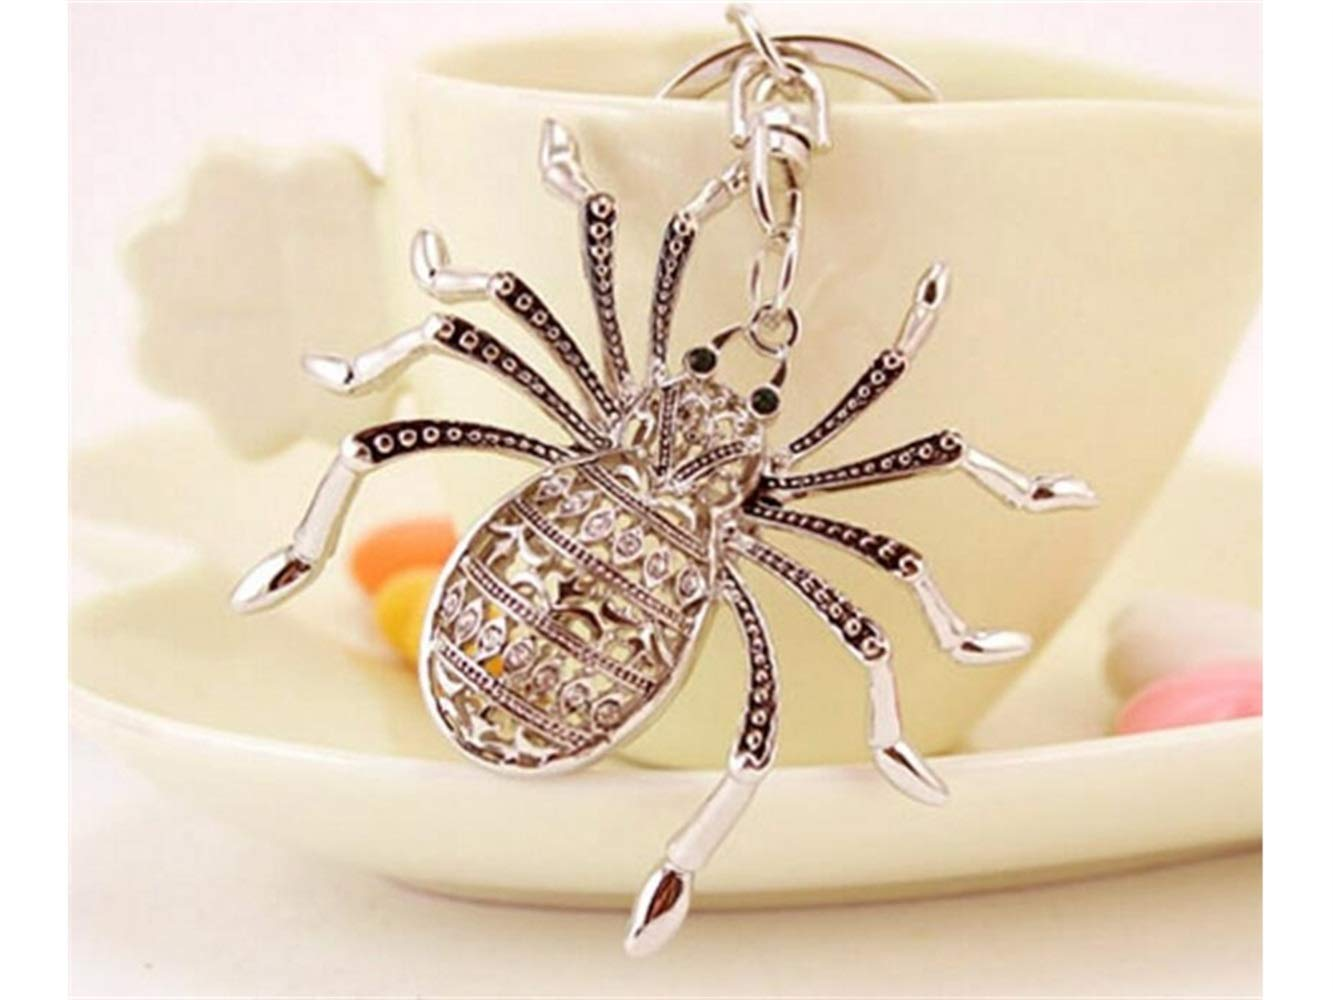 Car Keychain, Exquisite Personality Big Spider Keychain Animal Key Trinket Car Bag Key Holder Decorations(Silver) for Gift by Huasen (Image #5)